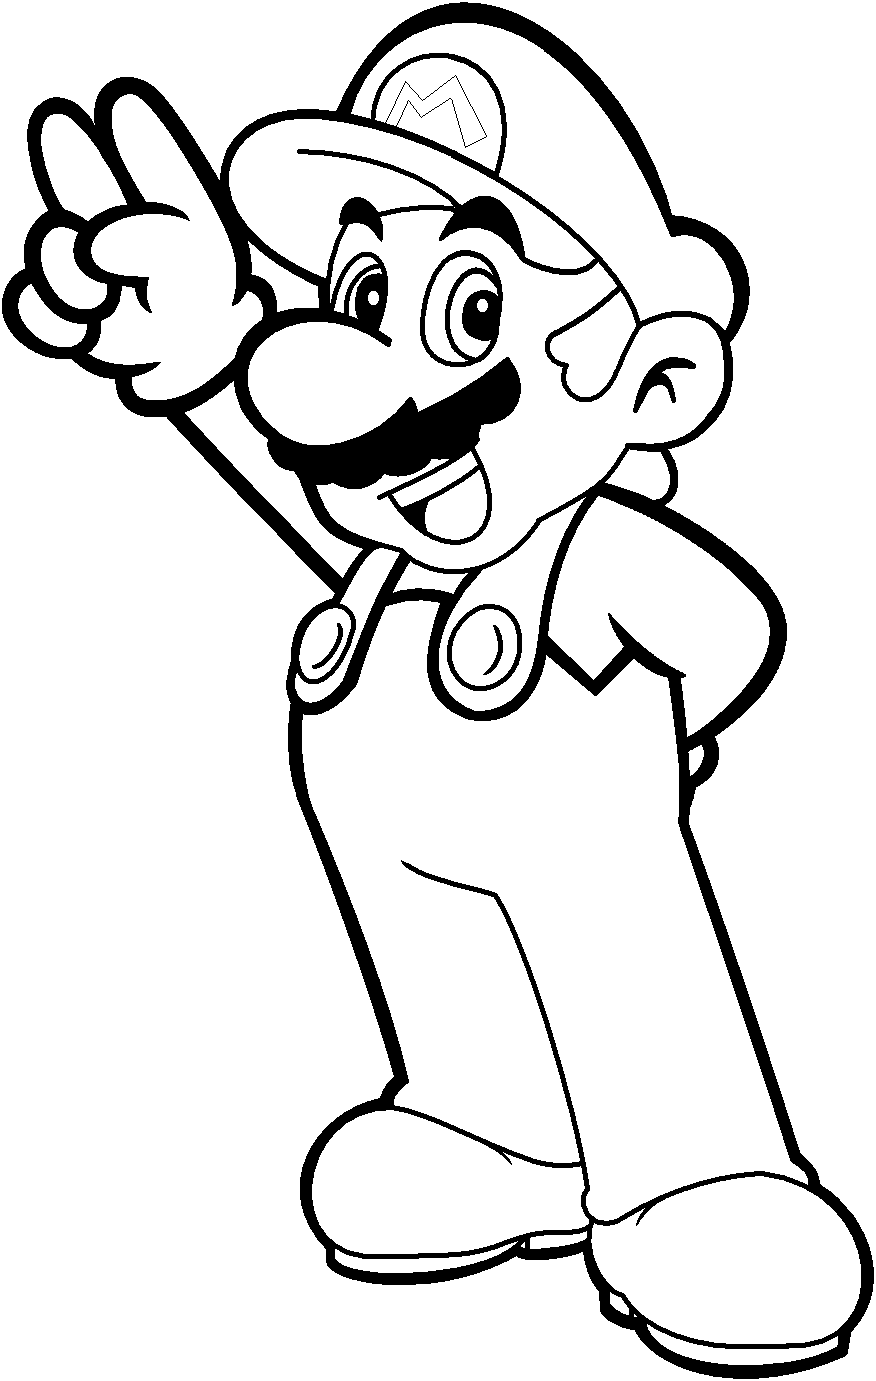 mario bro yoshi coloring pages - photo#27